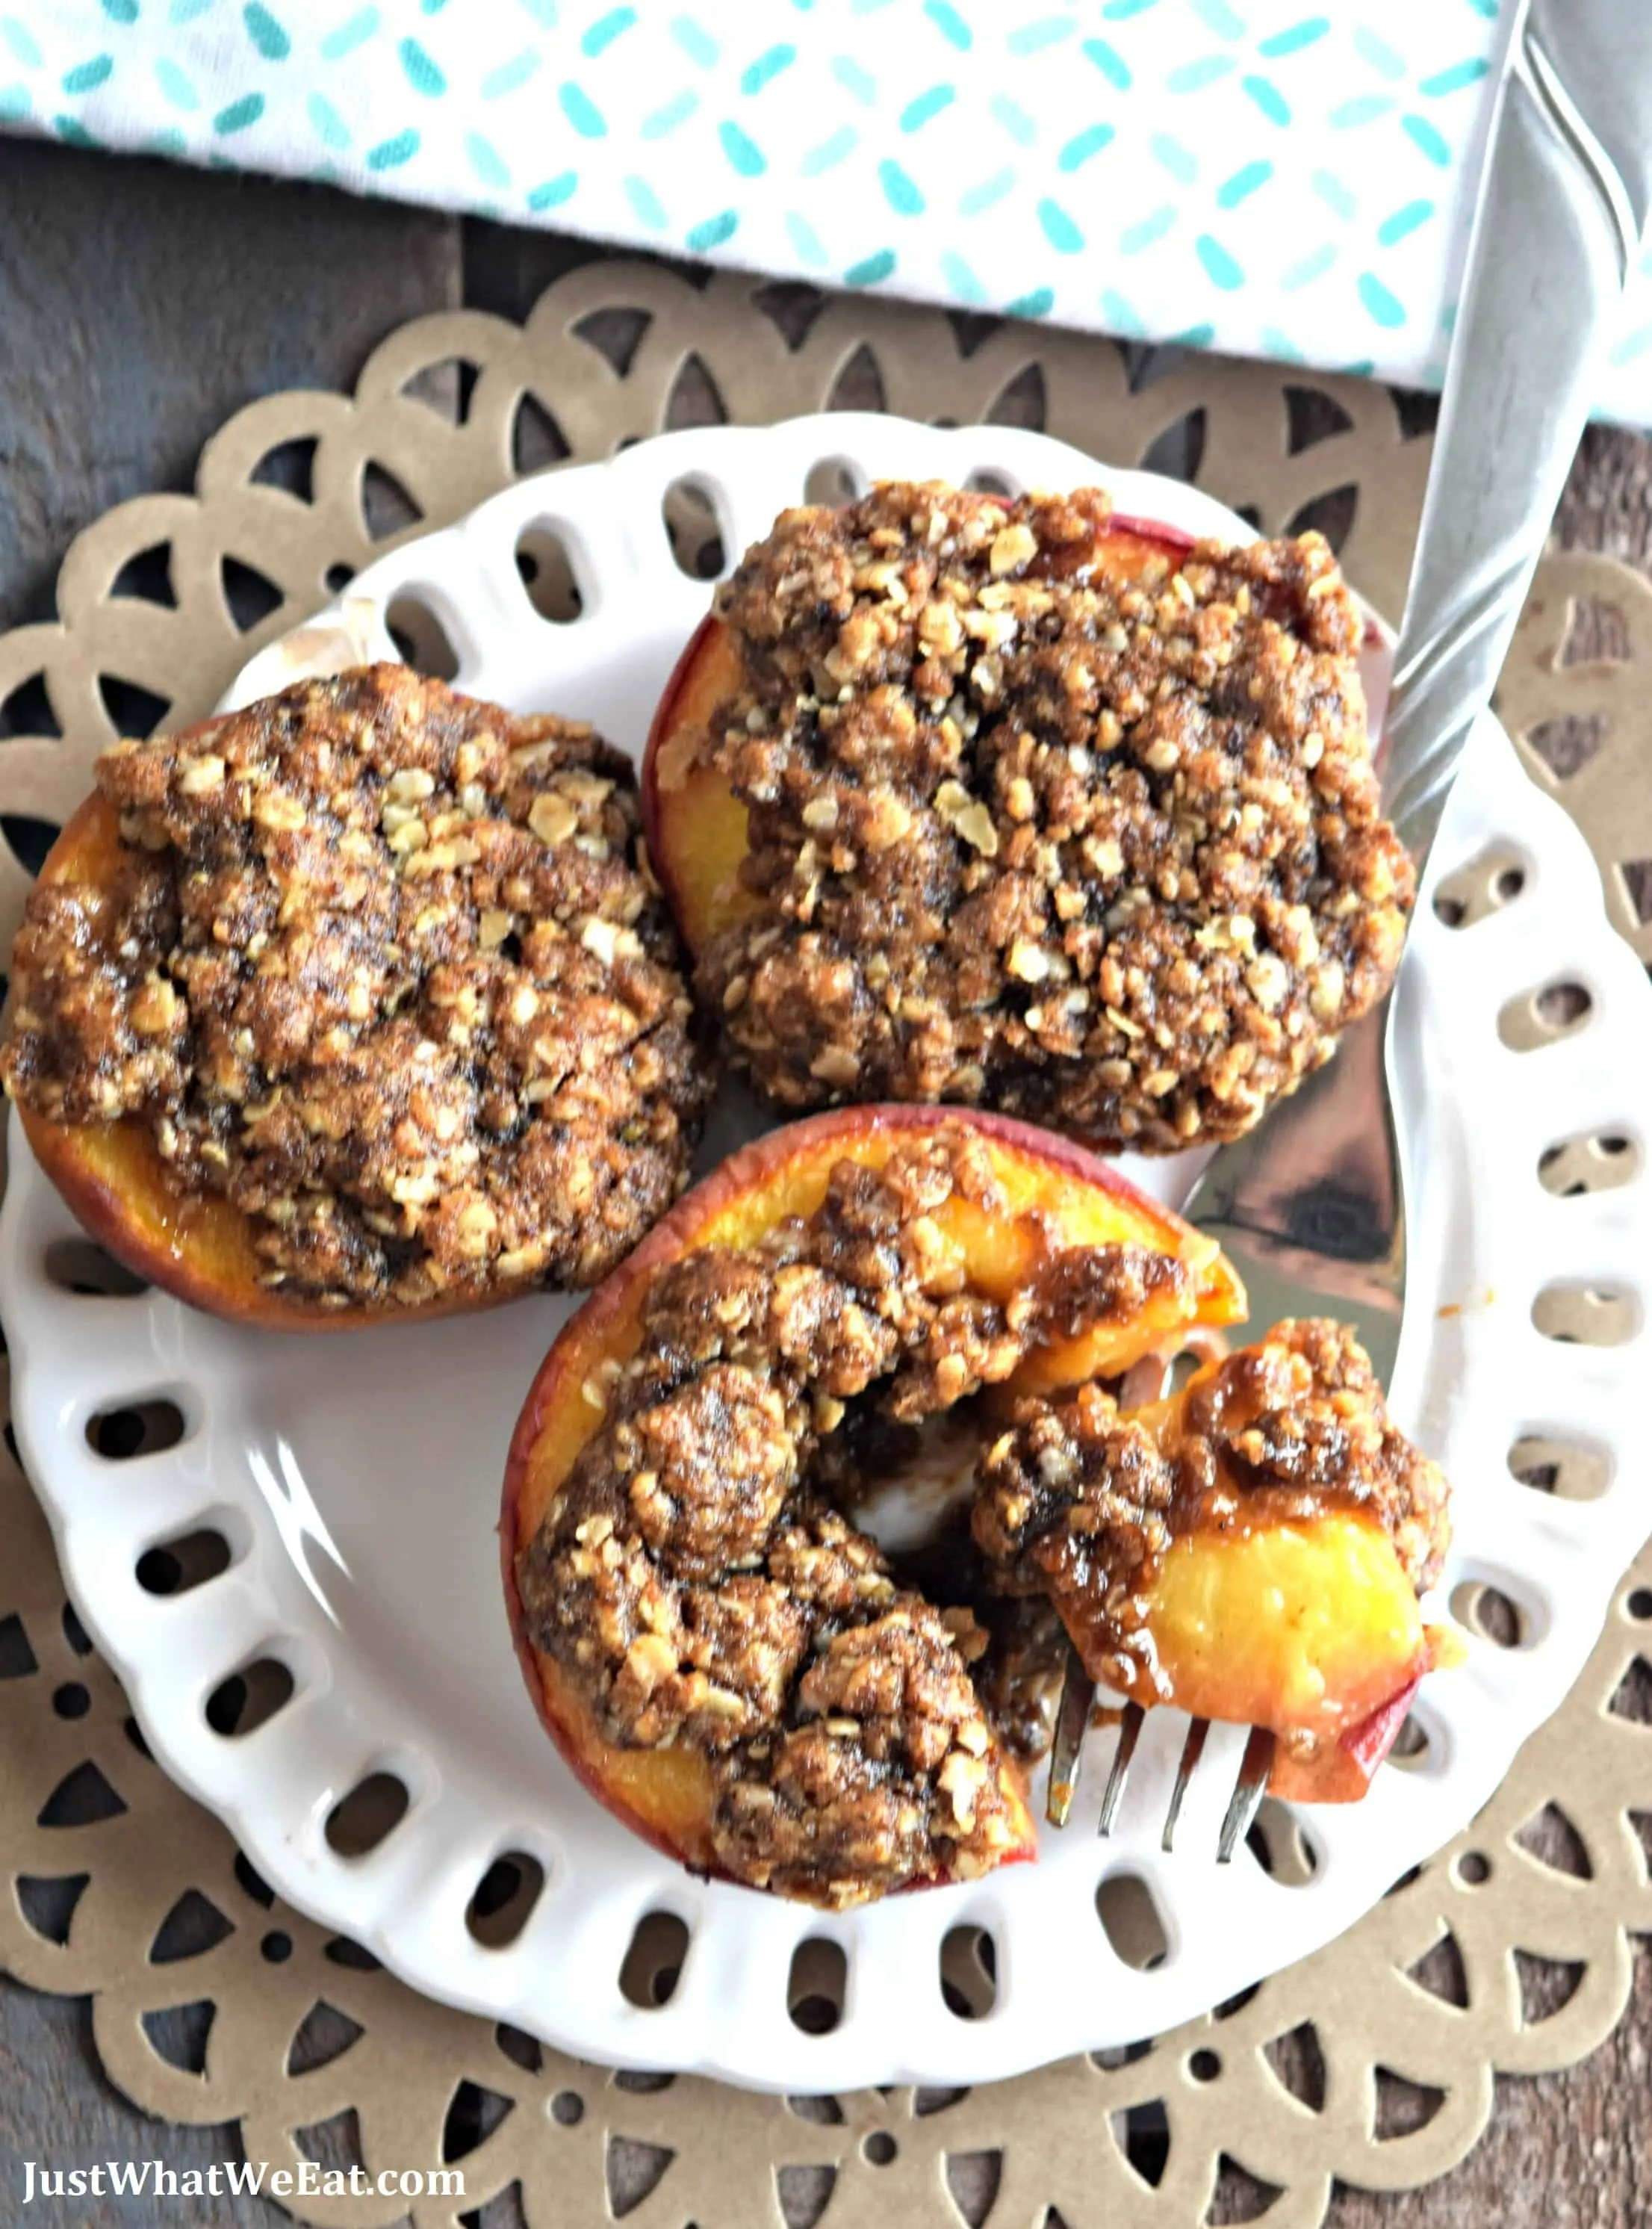 Baked-Peaches-with-Streusel-Topping-Gluten-Free-Vegan-Refined-Sugar-Free-3